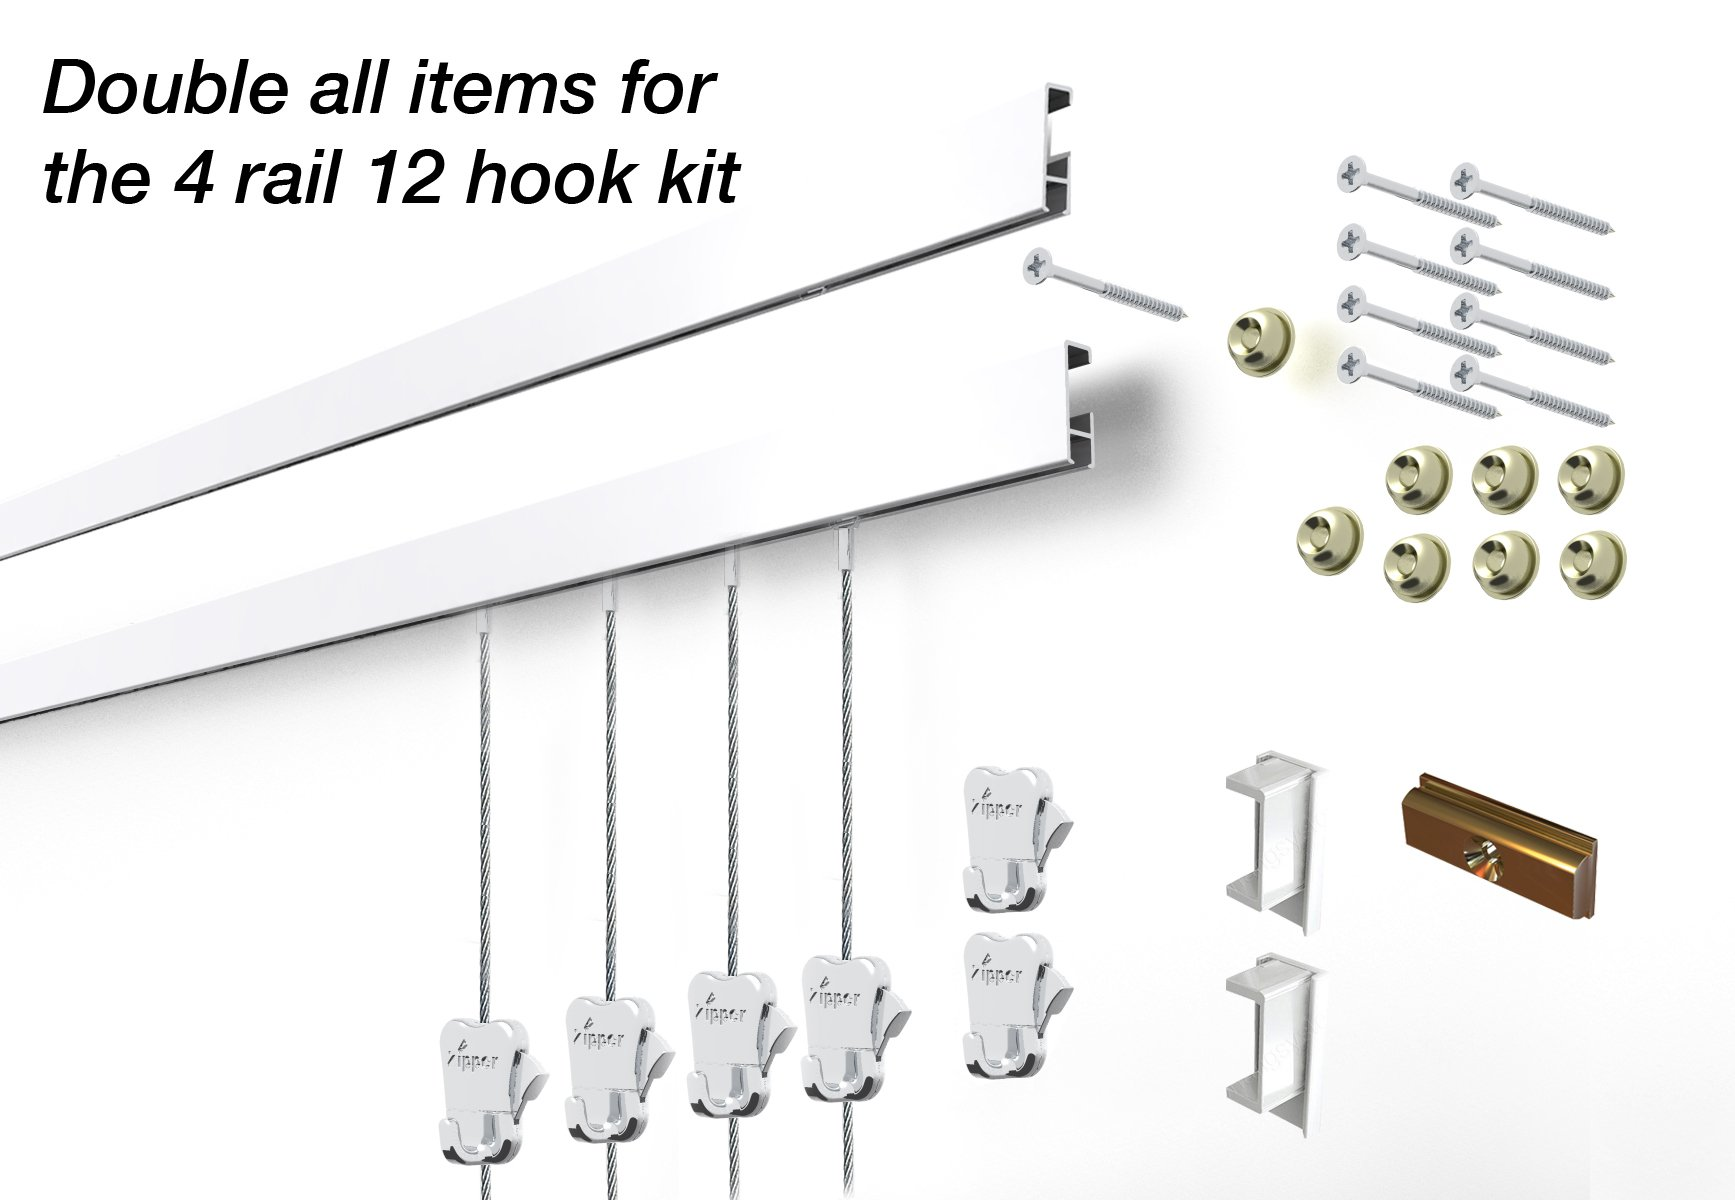 STAS Cliprail Complete Art Hanging Gallery System (4 rails 12 hooks and 8 cables, white rails) by Stas Picture Hanging Systems